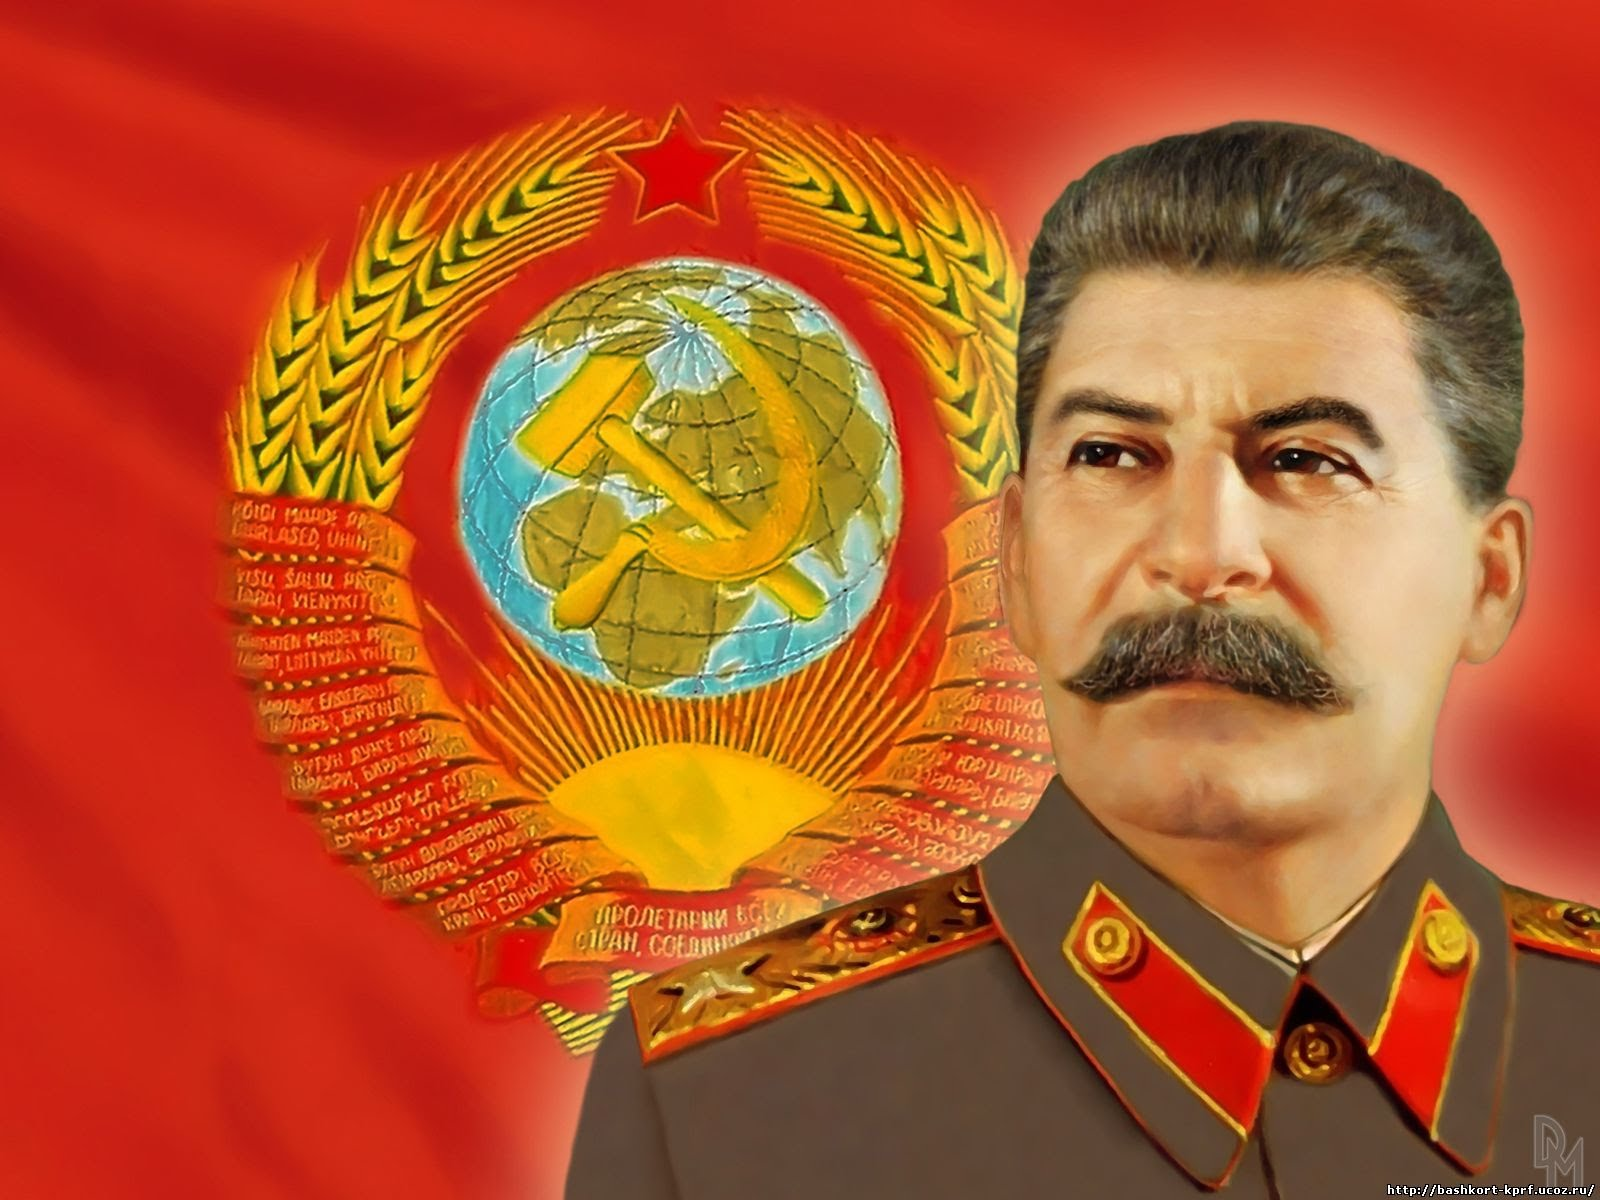 Episode 25 - Stalin's Great Purge